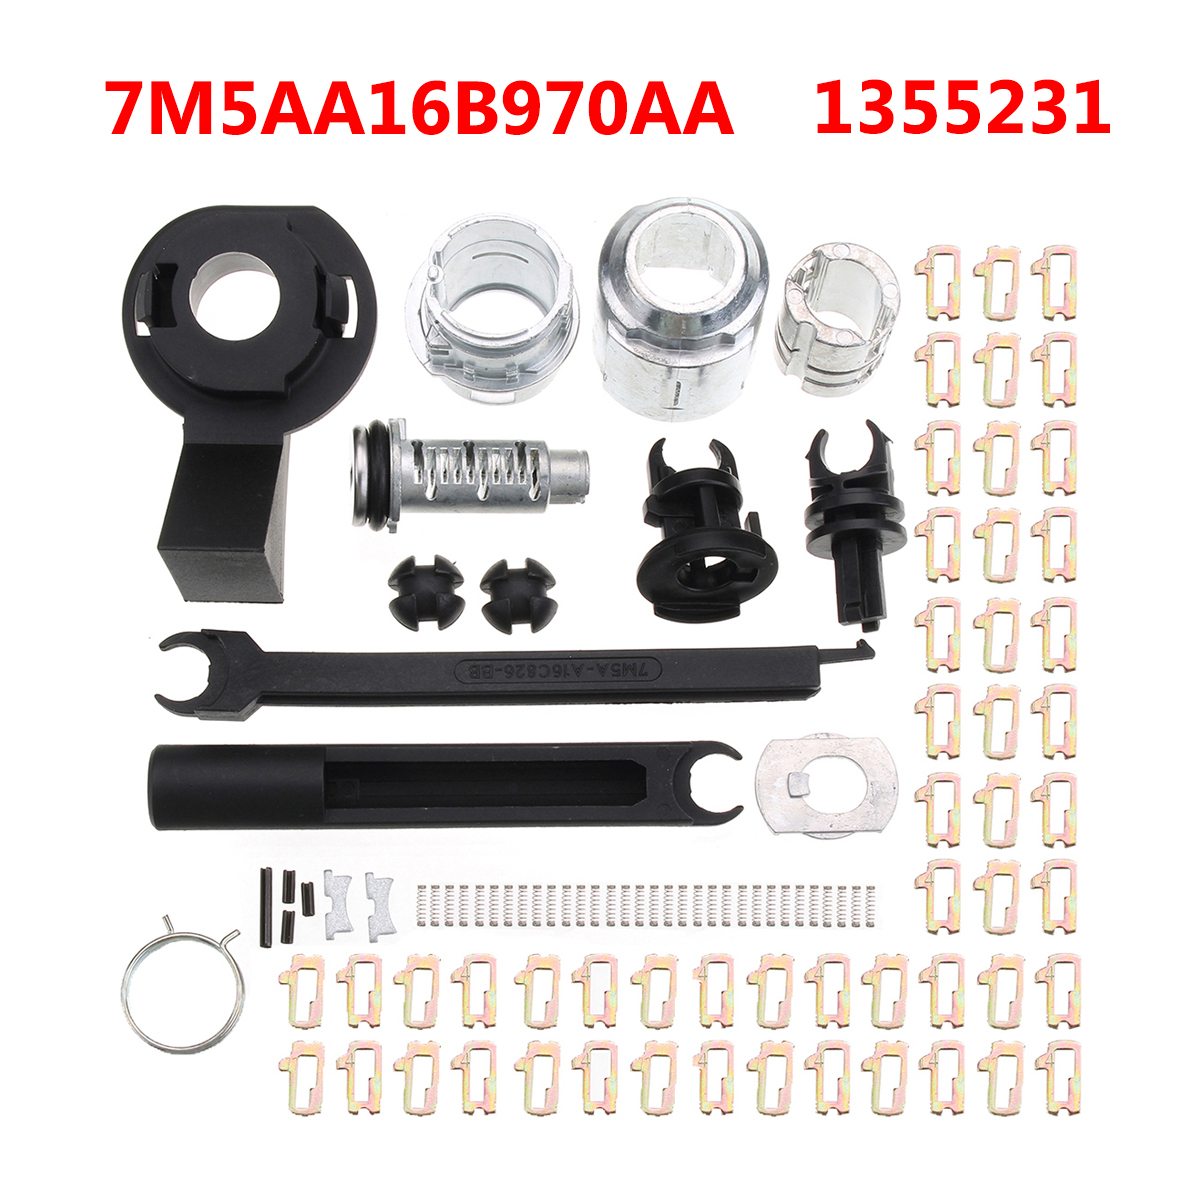 Bonnet Release Lock Repair Kit Latch for Ford Focus MK2 2004-2012 7M5AA16B970AA